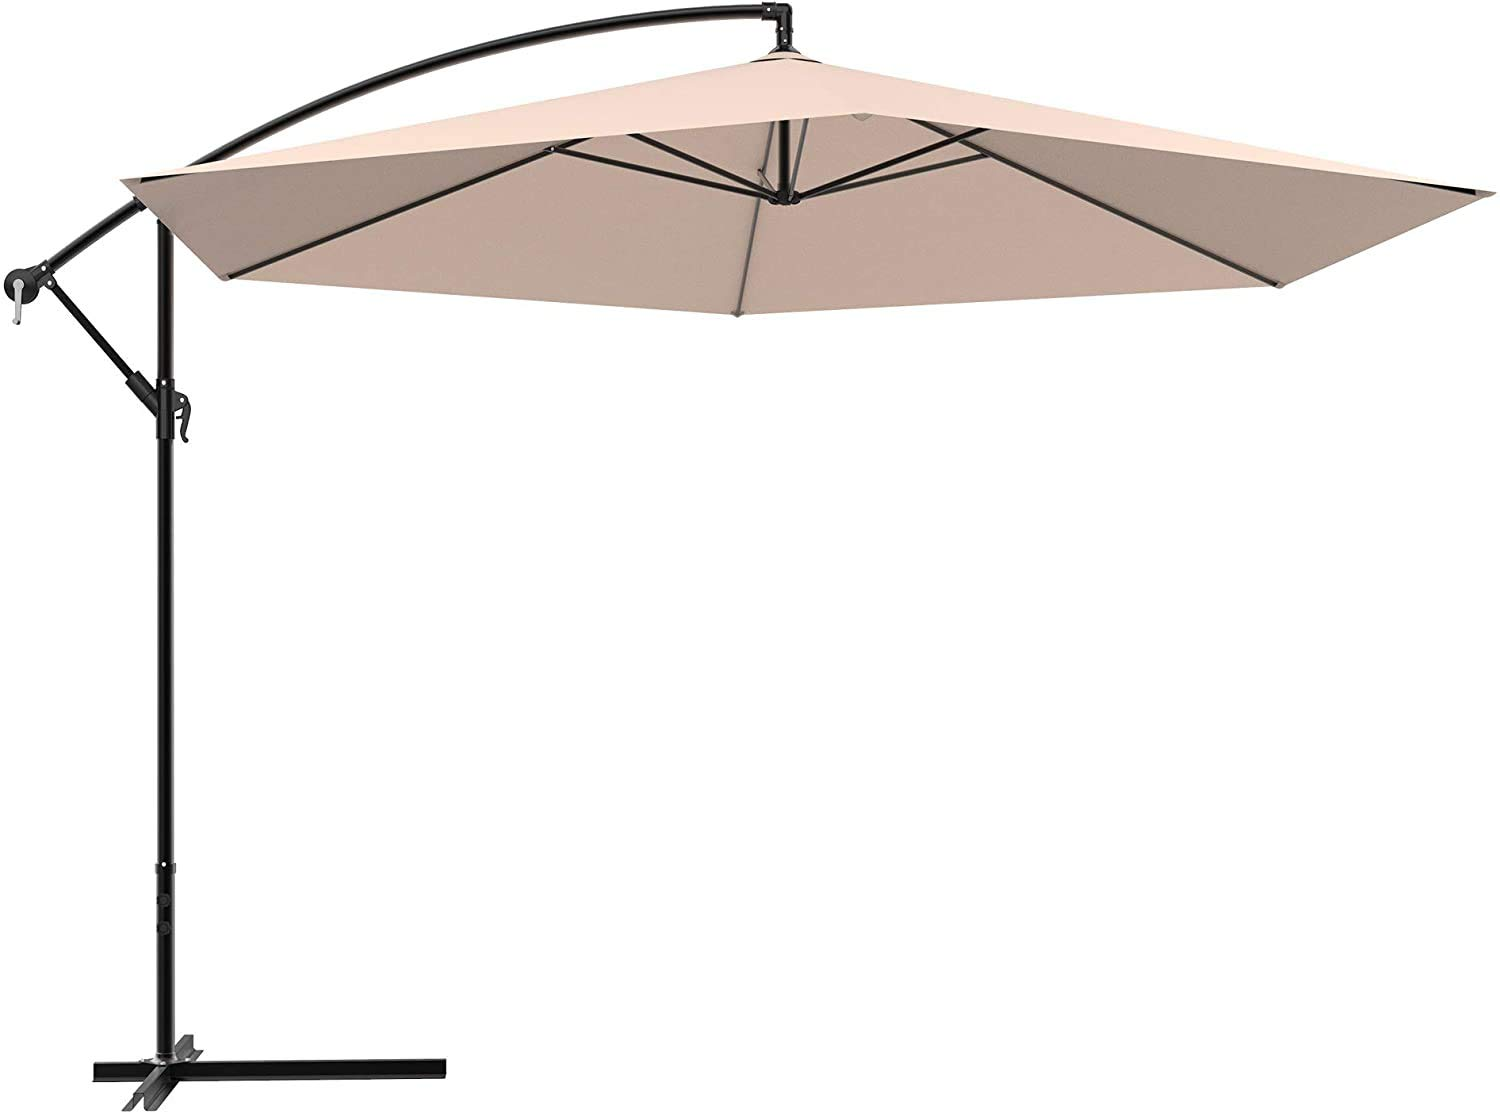 Diaotec Grand Patio 11 Ft/12 Ft Advanced Curvy Aluminum Offset Umbrella, Outdoor Cantilever Hanging Adjustable Umbrella Use for Pool, Yard, Beach and Cafe